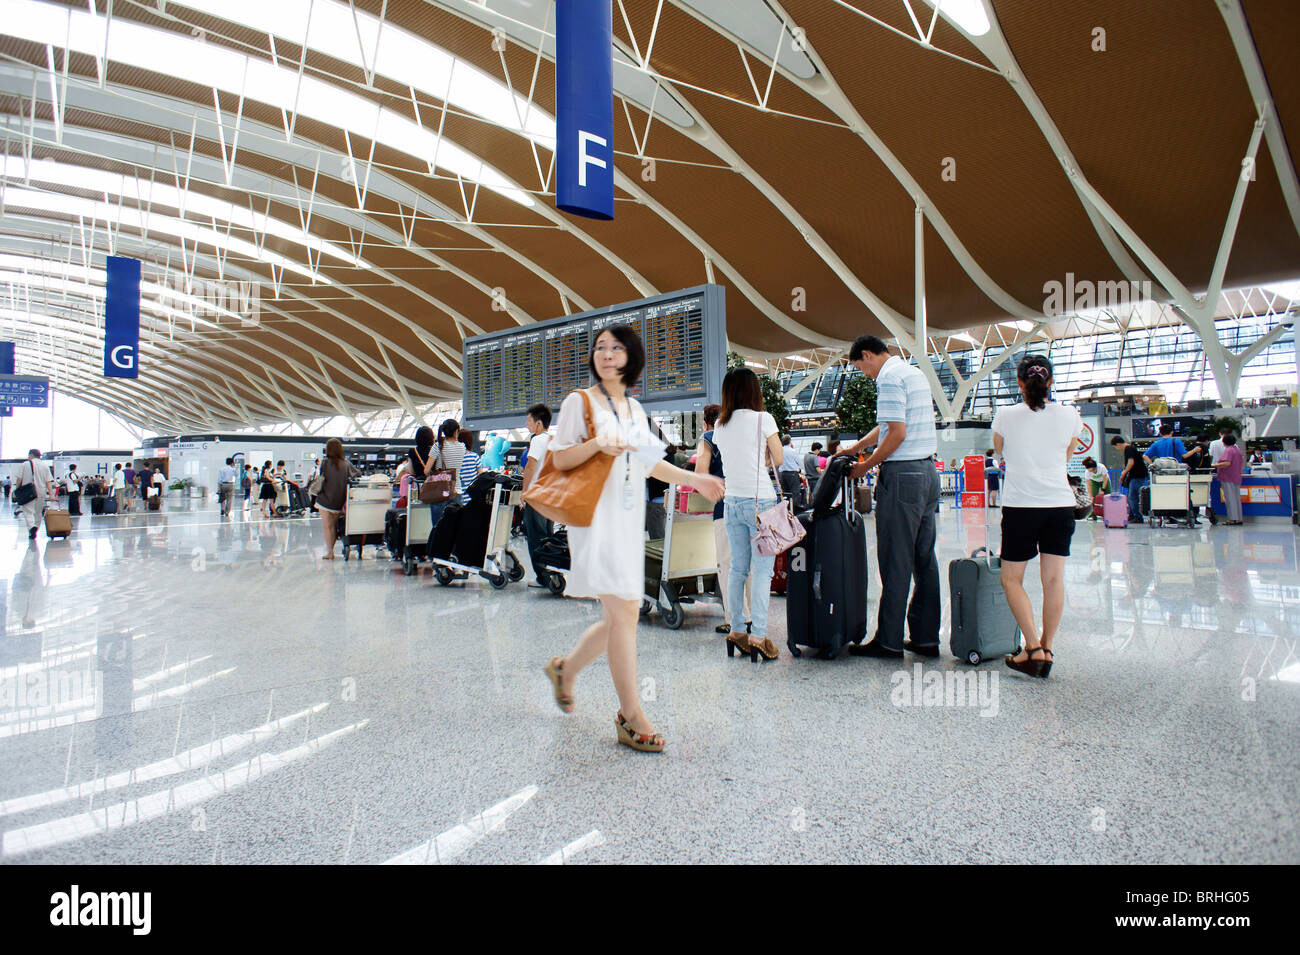 Shanghai, China. Main concourse departure lounge with flight notice board, Pudong International Airport, Shanghai - Stock Image